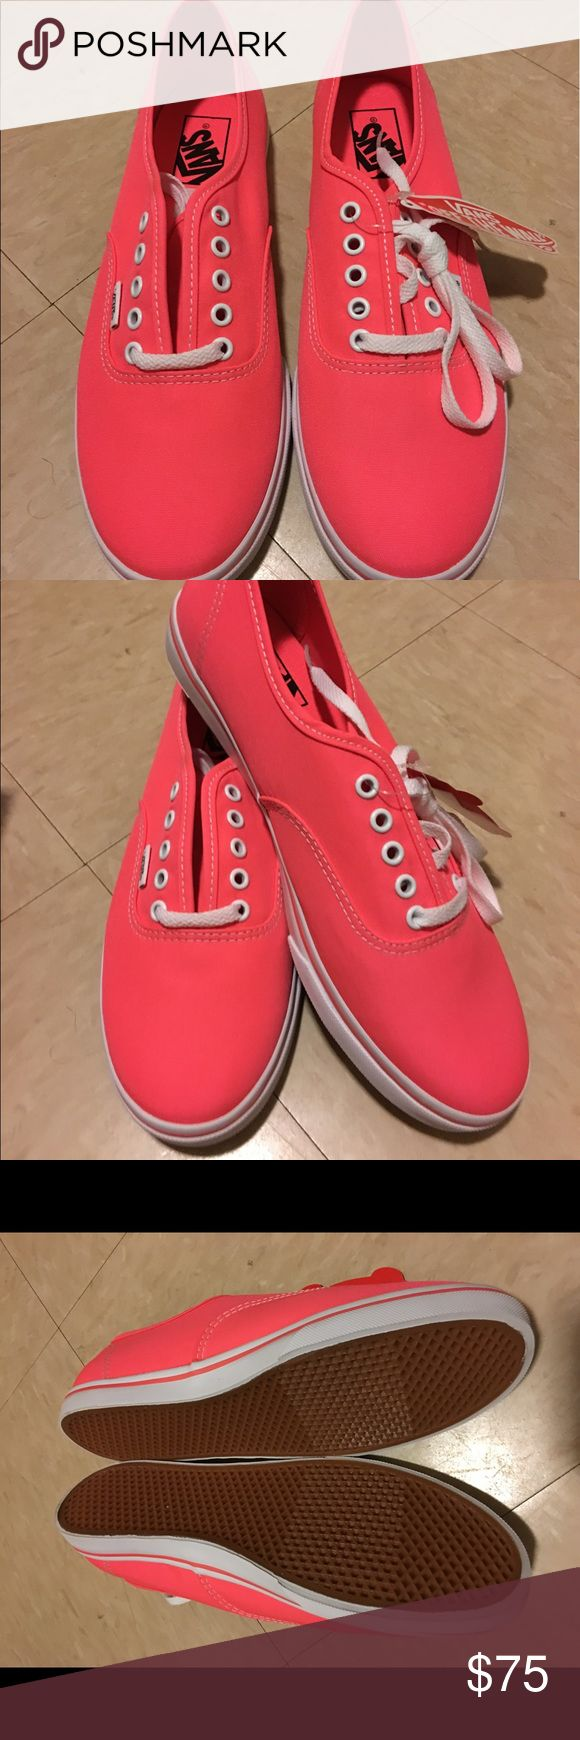 Women Neon Coral Vans Brand new, never worn and comes its original box Vans Shoes Sneakers